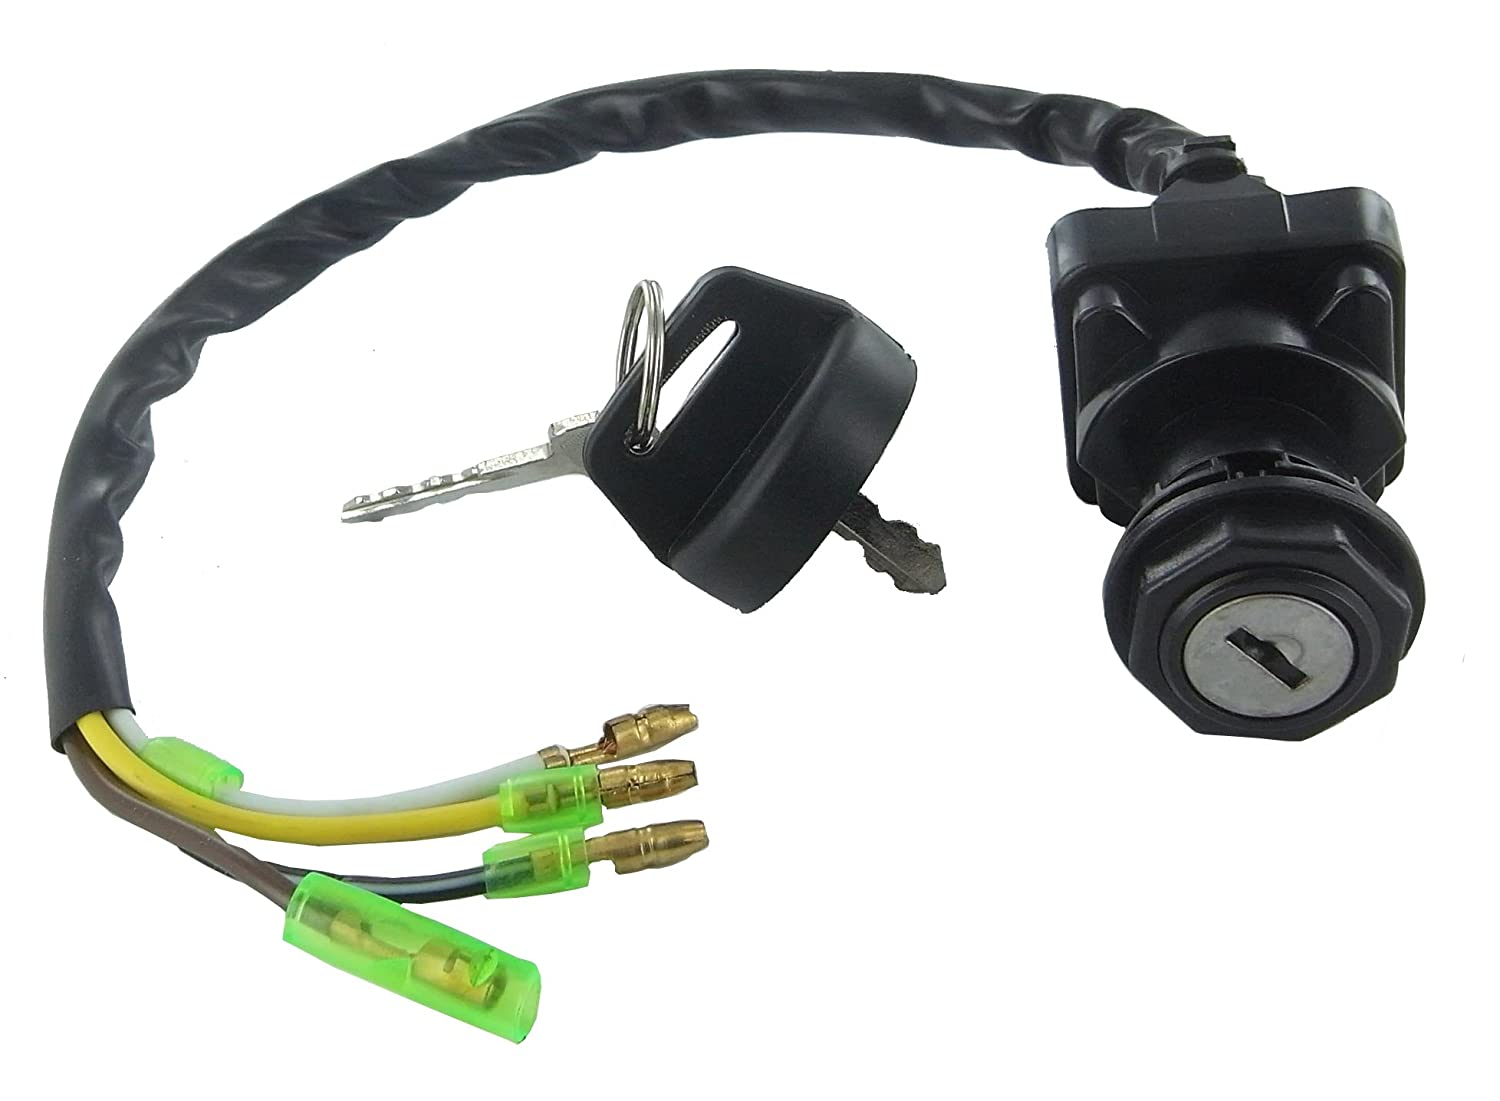 Amazon ignition key switch kawasaki klf220 bayou 220 1988 amazon ignition key switch kawasaki klf220 bayou 220 1988 1989 1990 1991 1992 1993 1994 1995 atv switch new automotive asfbconference2016 Images